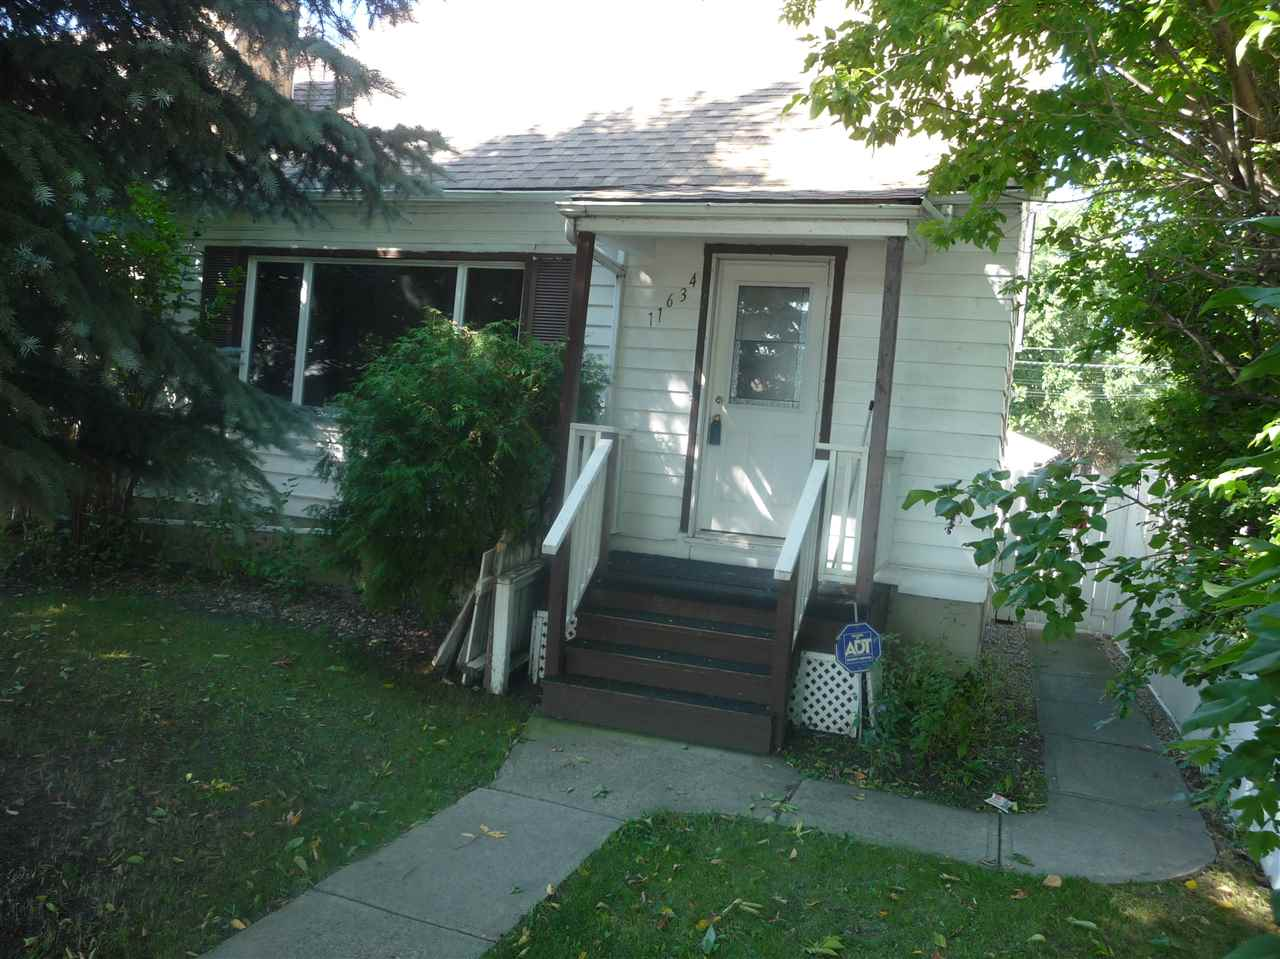 Main Photo: 11634 83 Street in Edmonton: Zone 05 House for sale : MLS® # E4077286